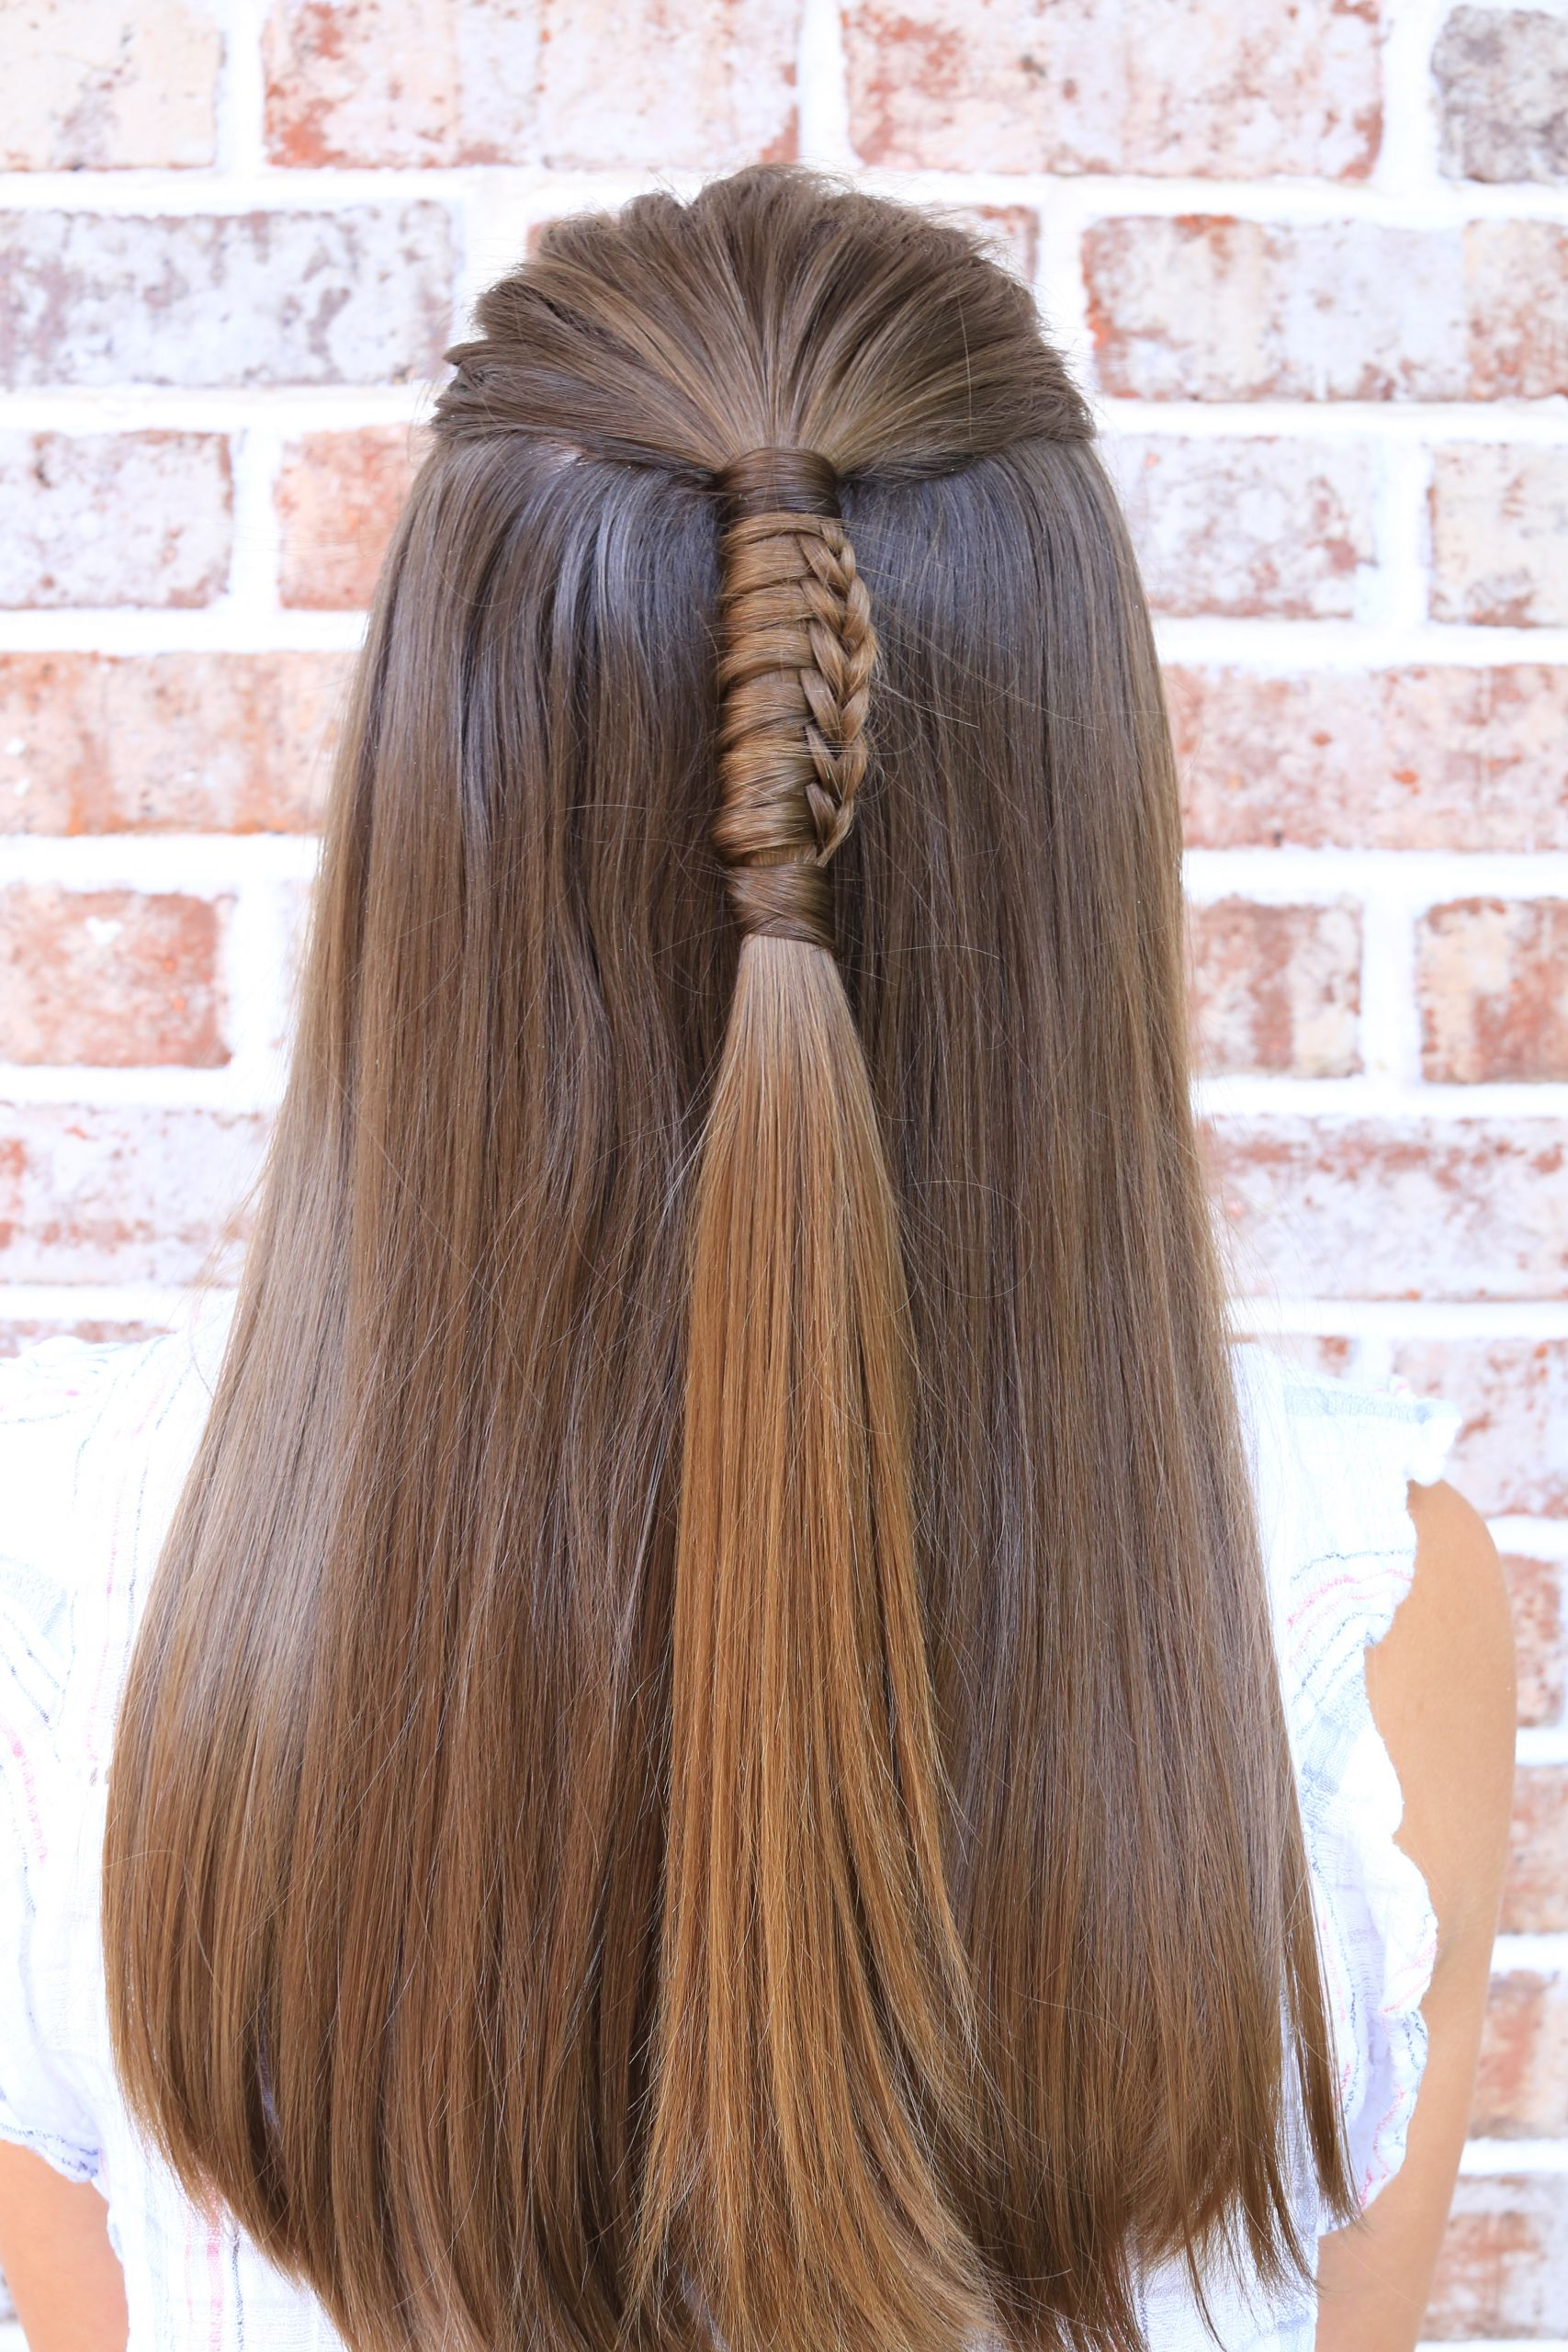 Hairstyle For Girls  5 Easy Hairstyles for Back to School